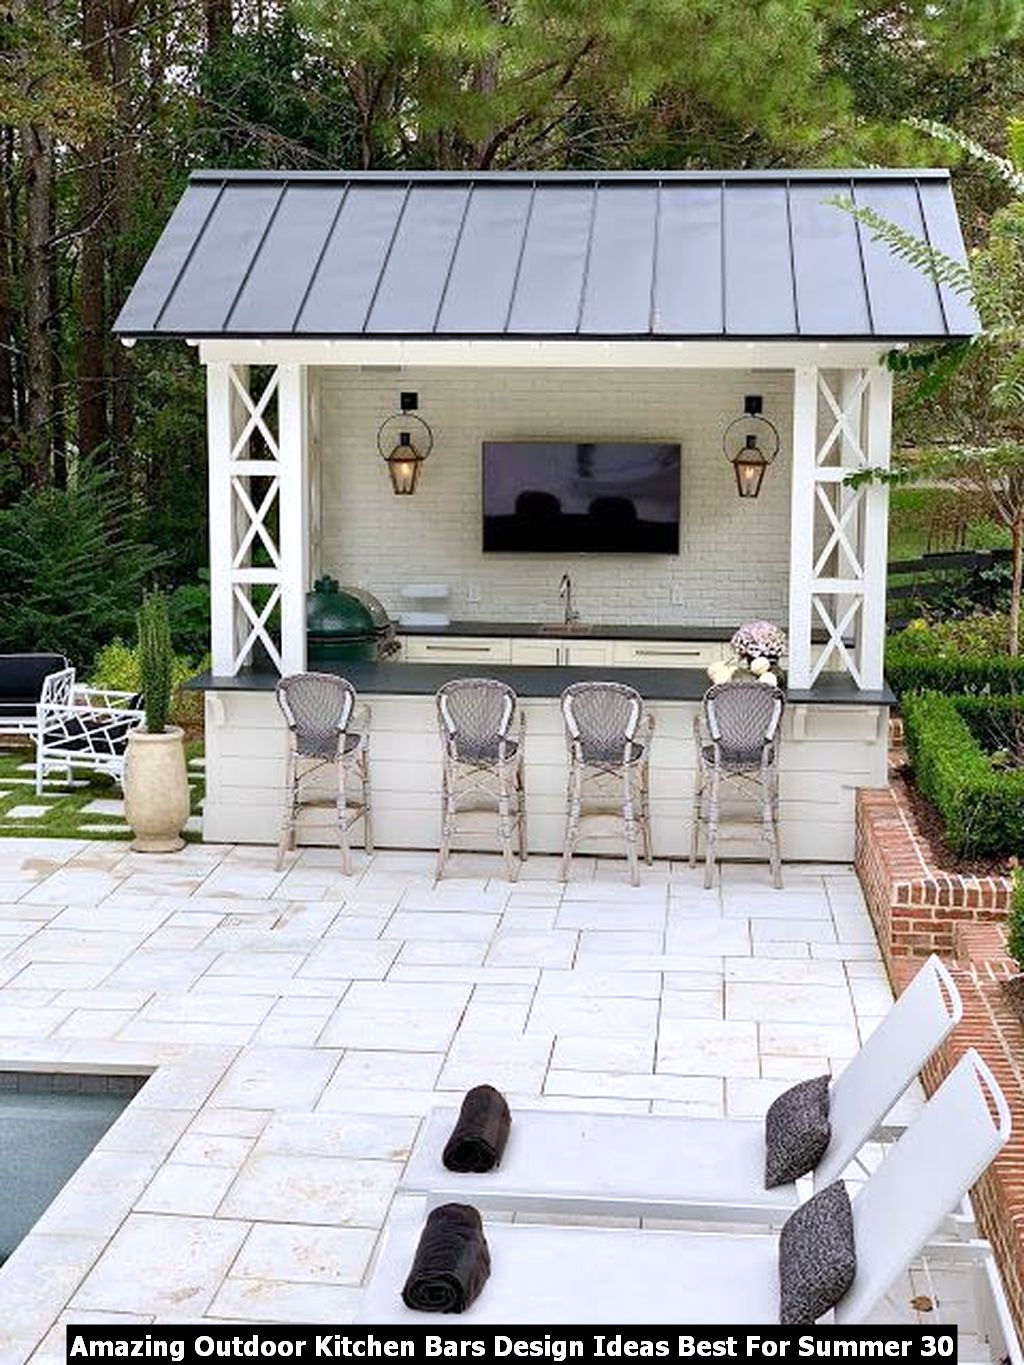 Amazing Outdoor Kitchen Bars Design Ideas Best For Summer 30